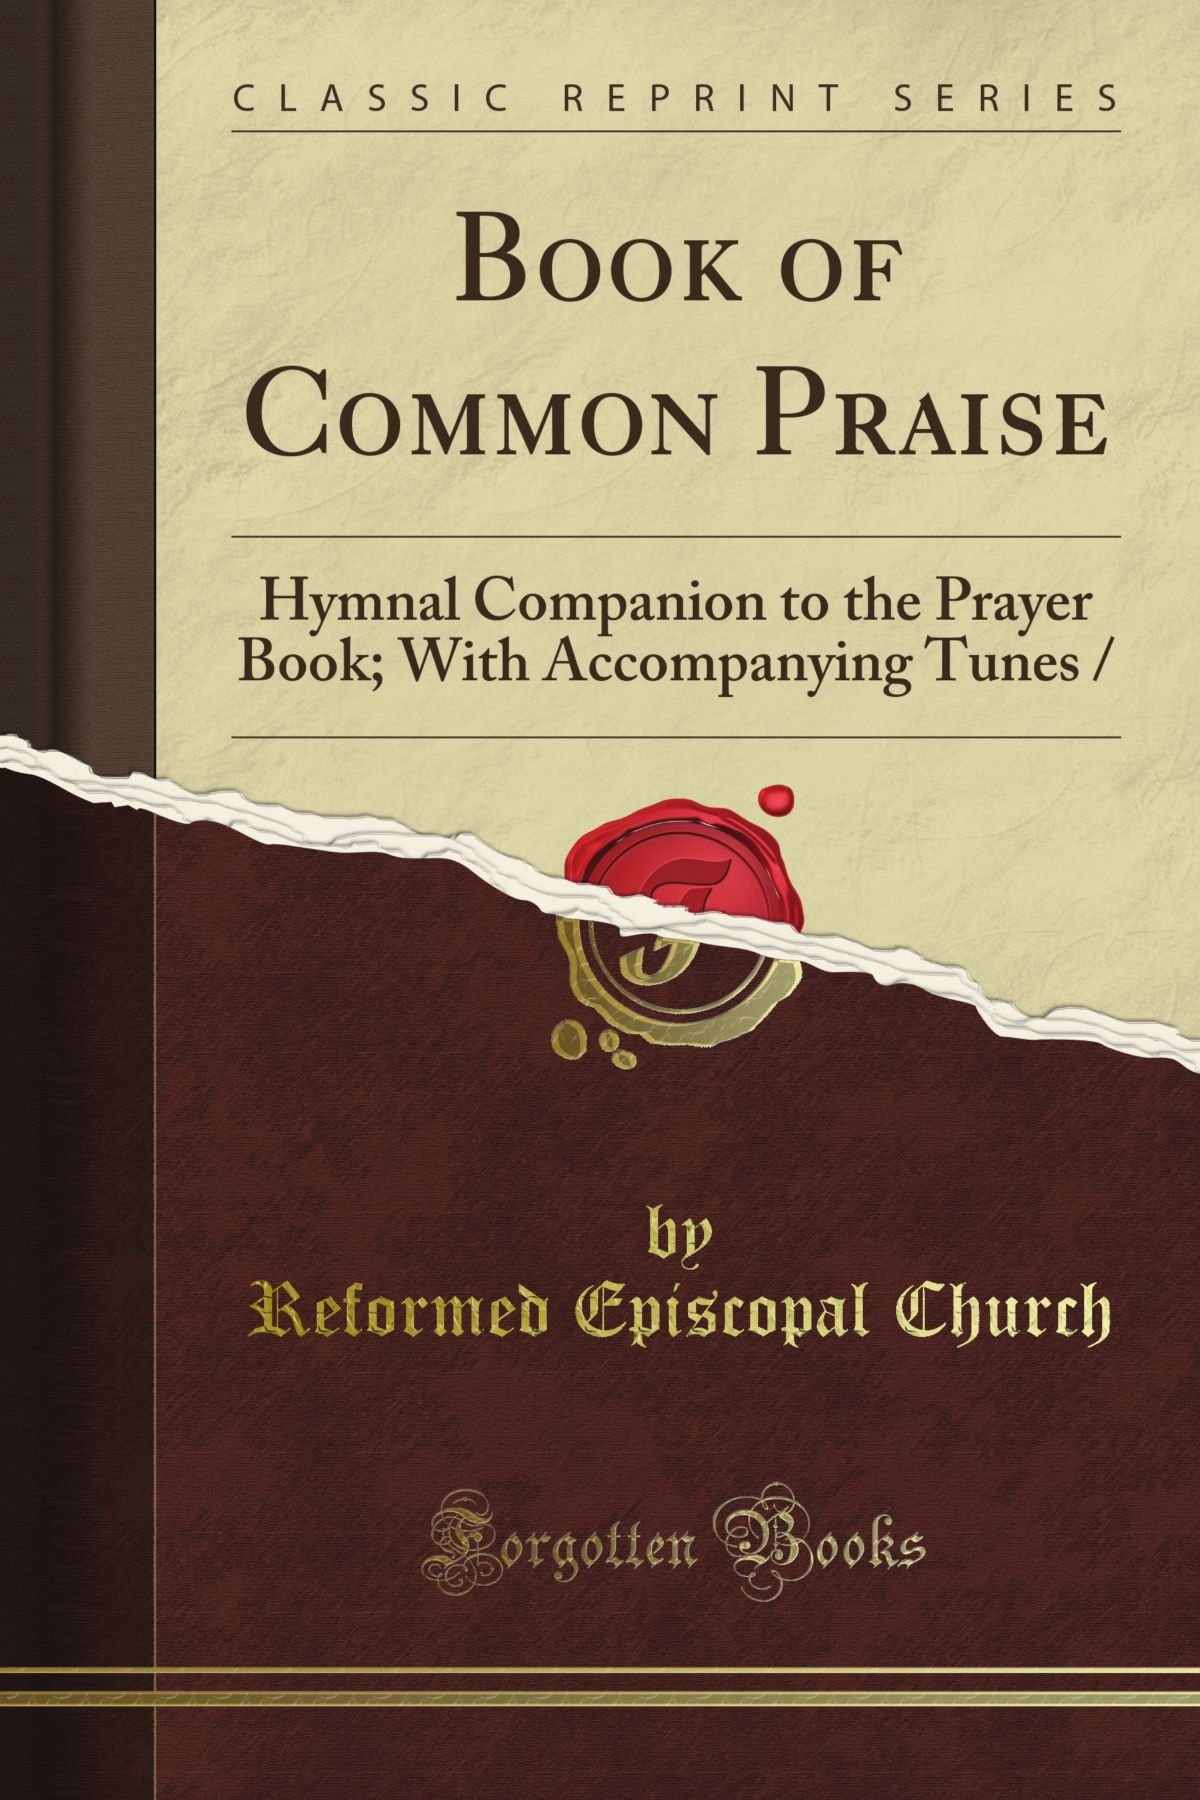 Book of Common Praise: Hymnal Companion to the Prayer Book; With Accompanying Tunes / (Classic Reprint)